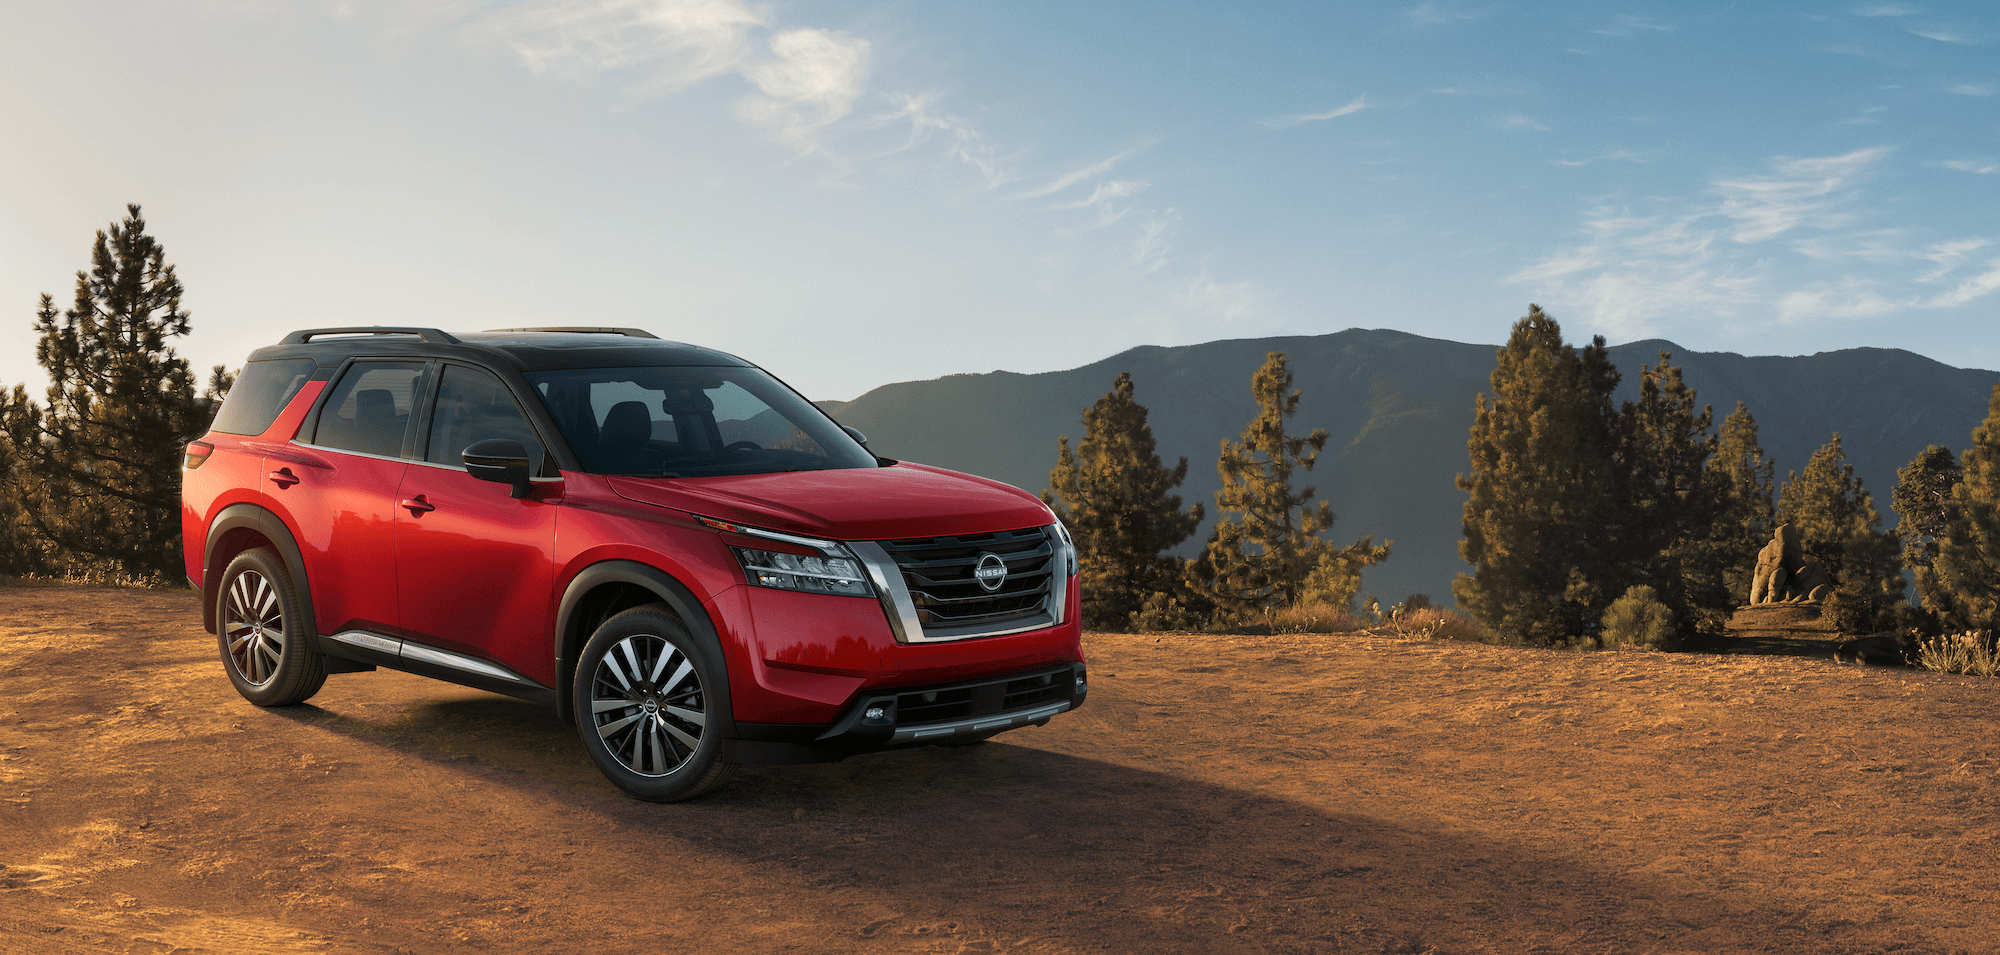 The All-New 2022 Nissan Pathfinder®